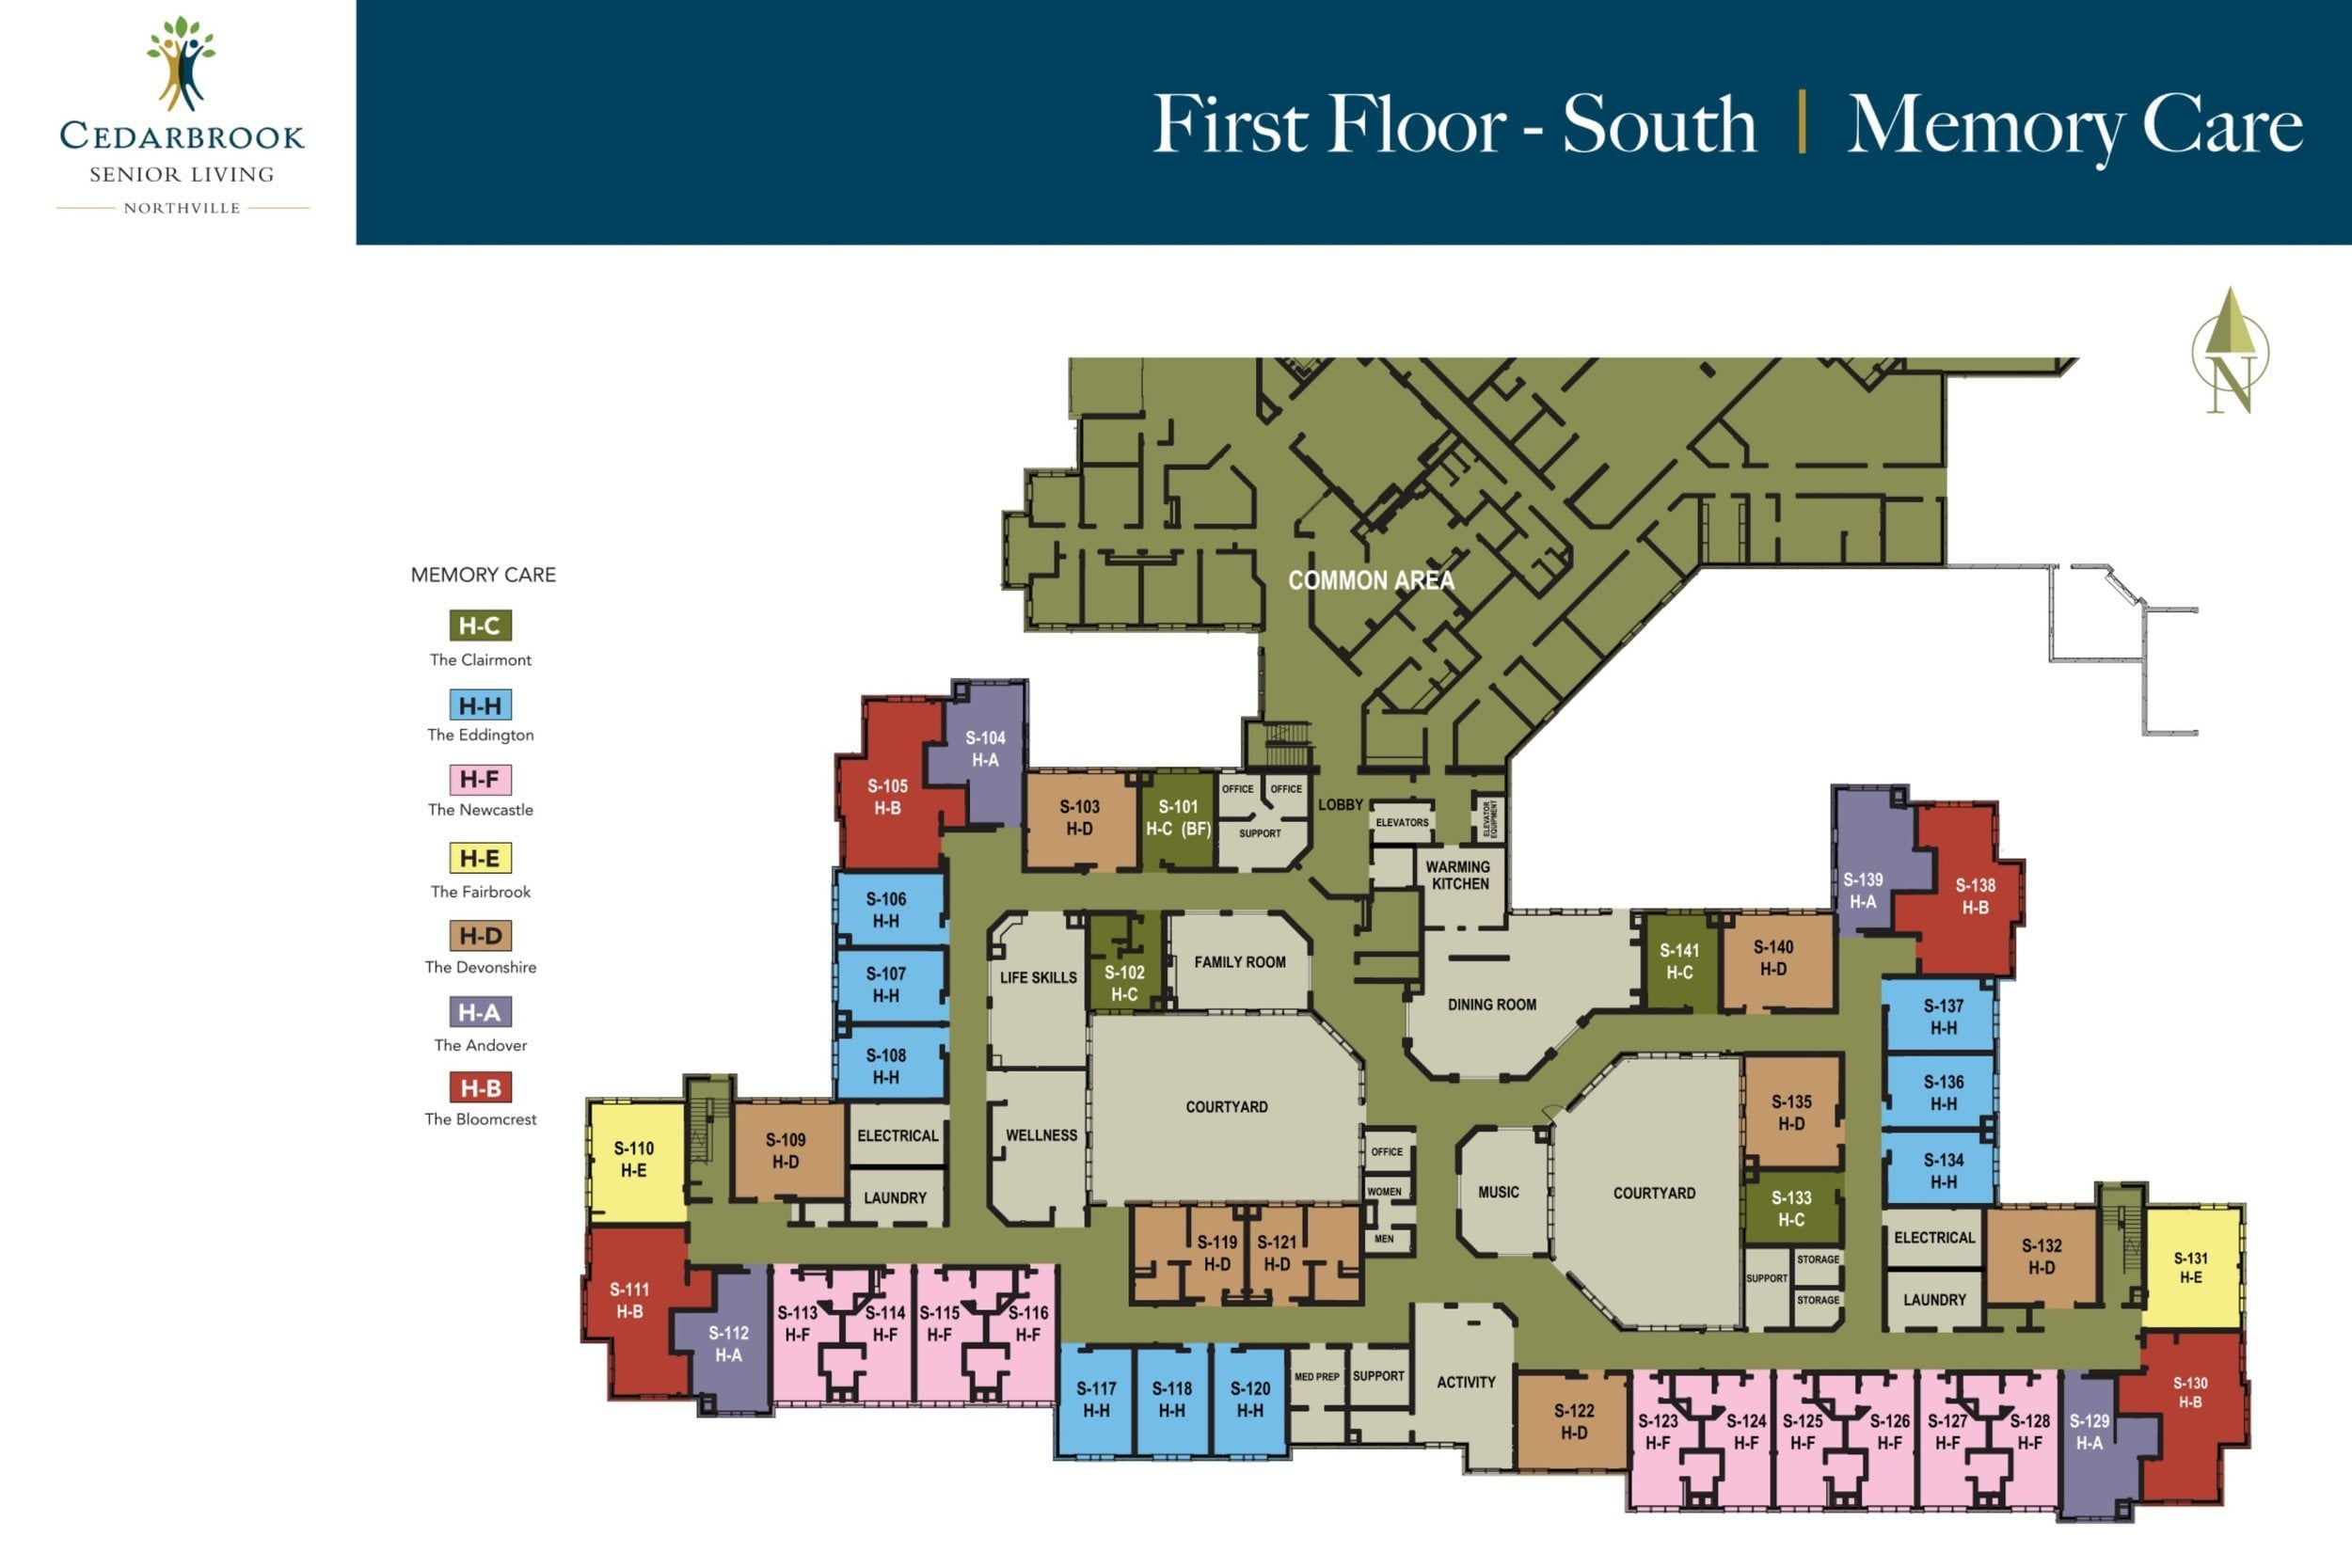 First Floor South - Memory Care